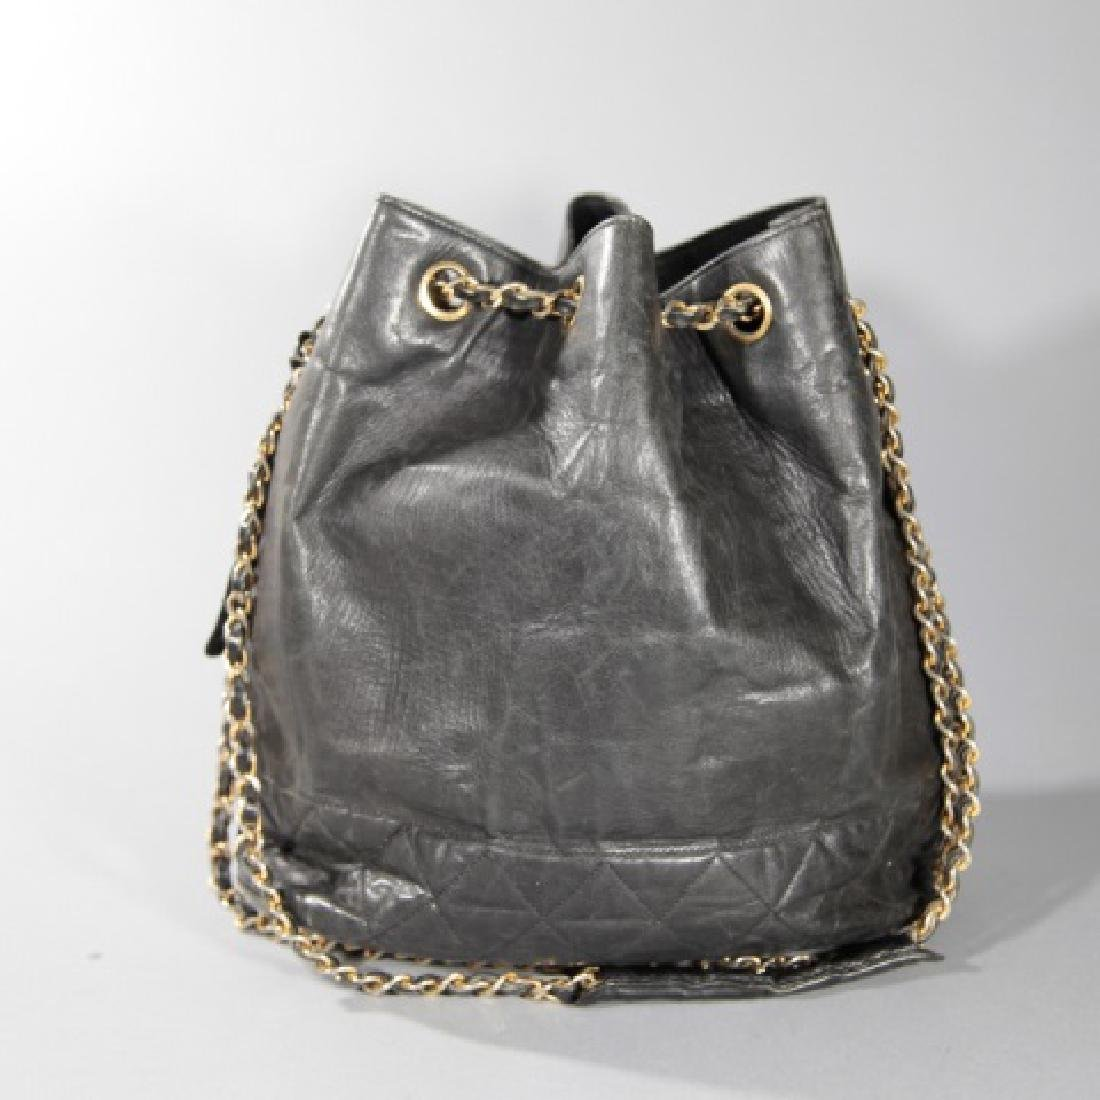 Vintage Black Quilted Leather Chanel Purse